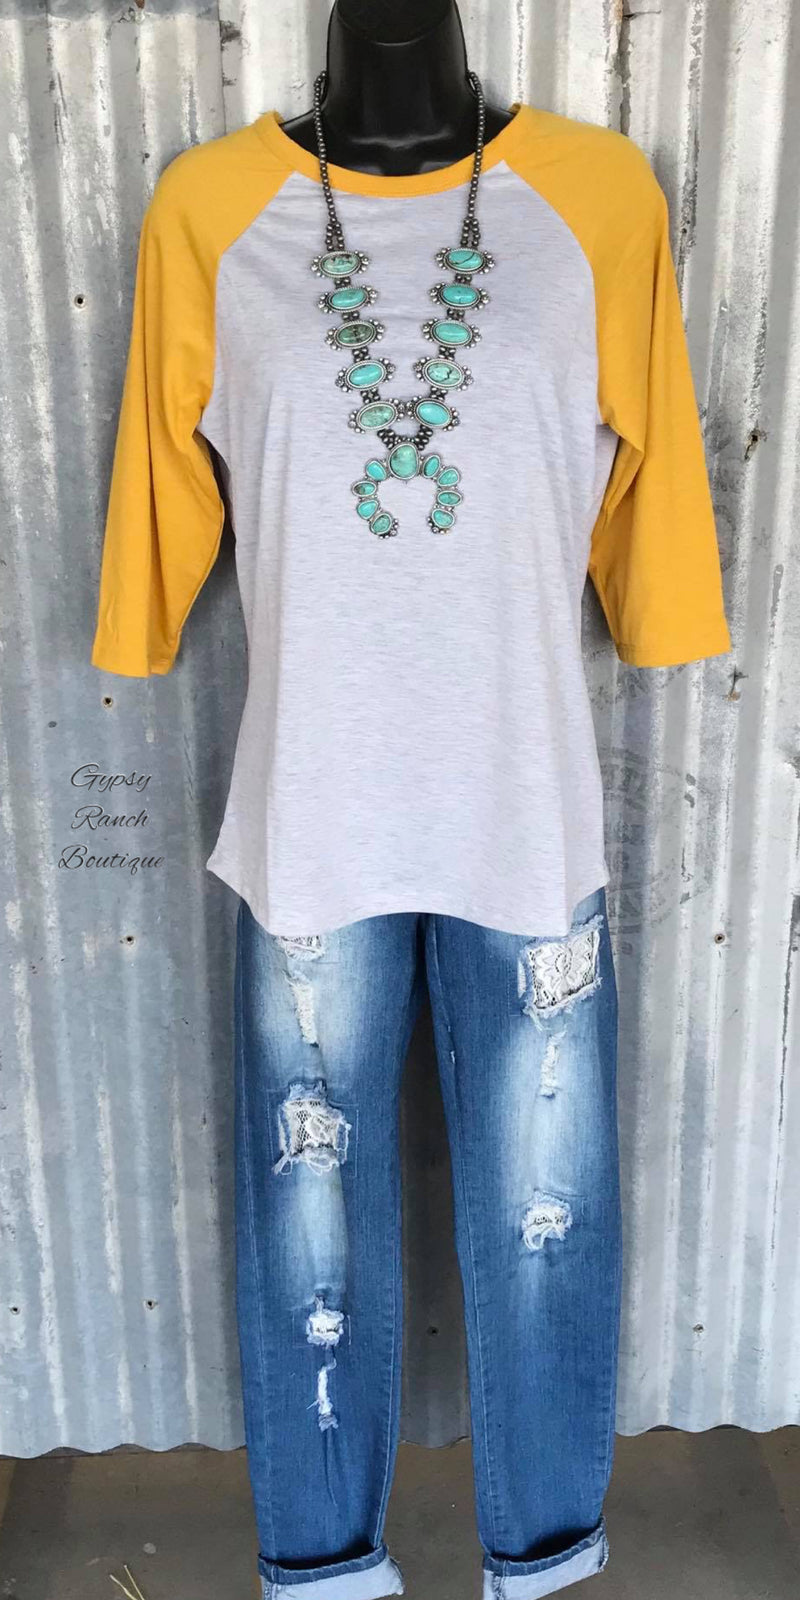 Burkburnett Mustard Raglan Top-Also in Plus Size